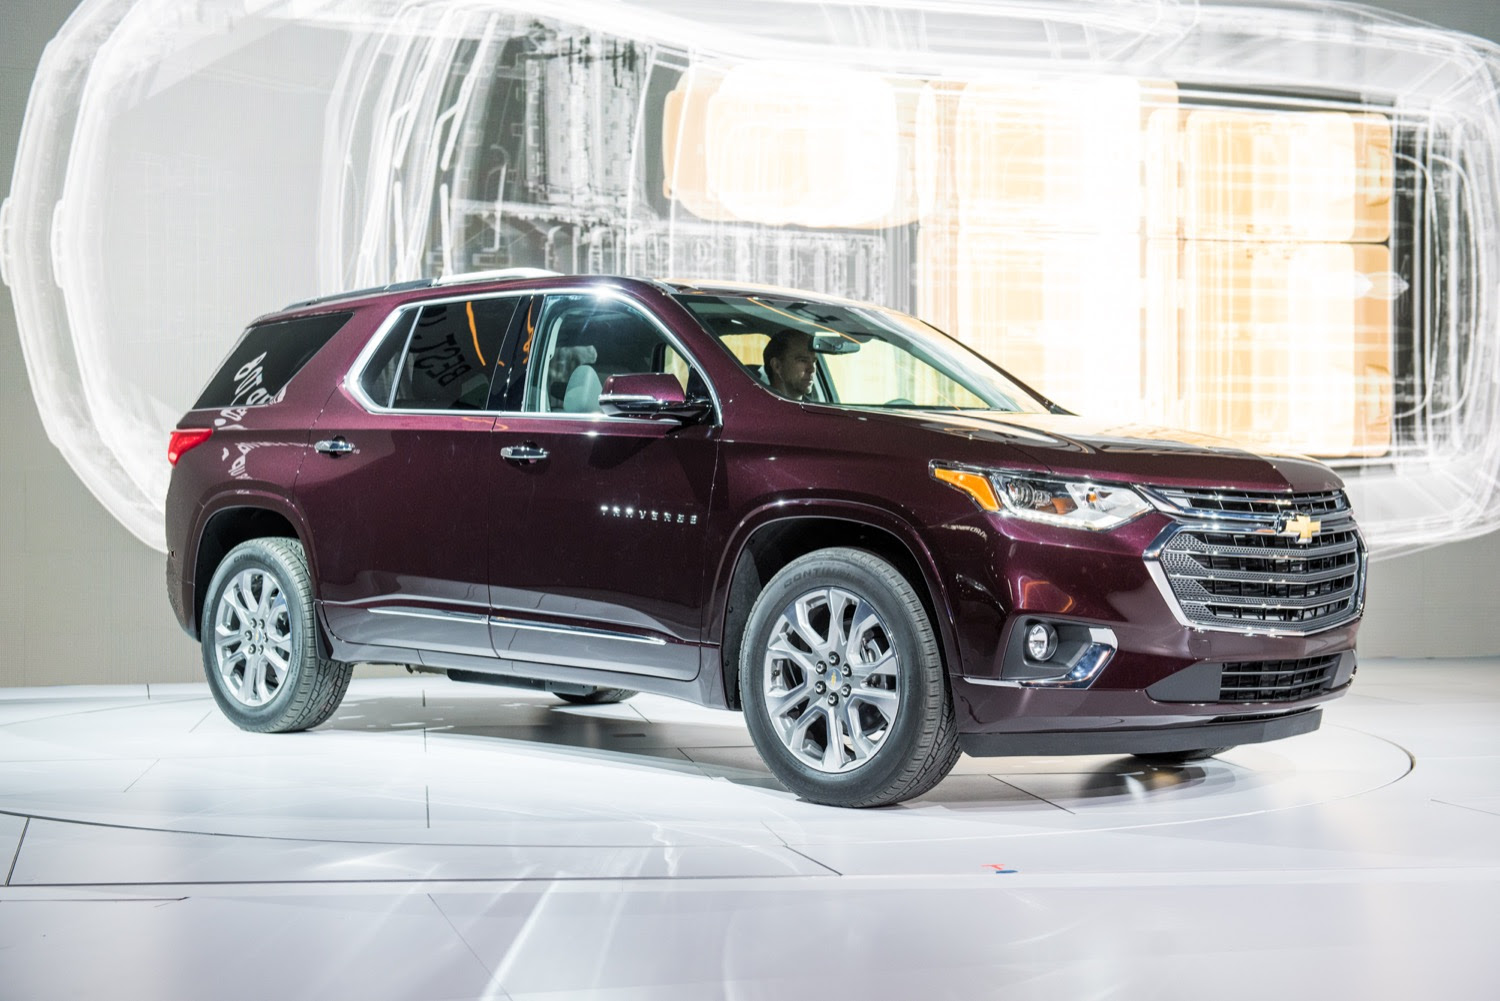 2018 Chevy Traverse Specifications Released | GM Authority